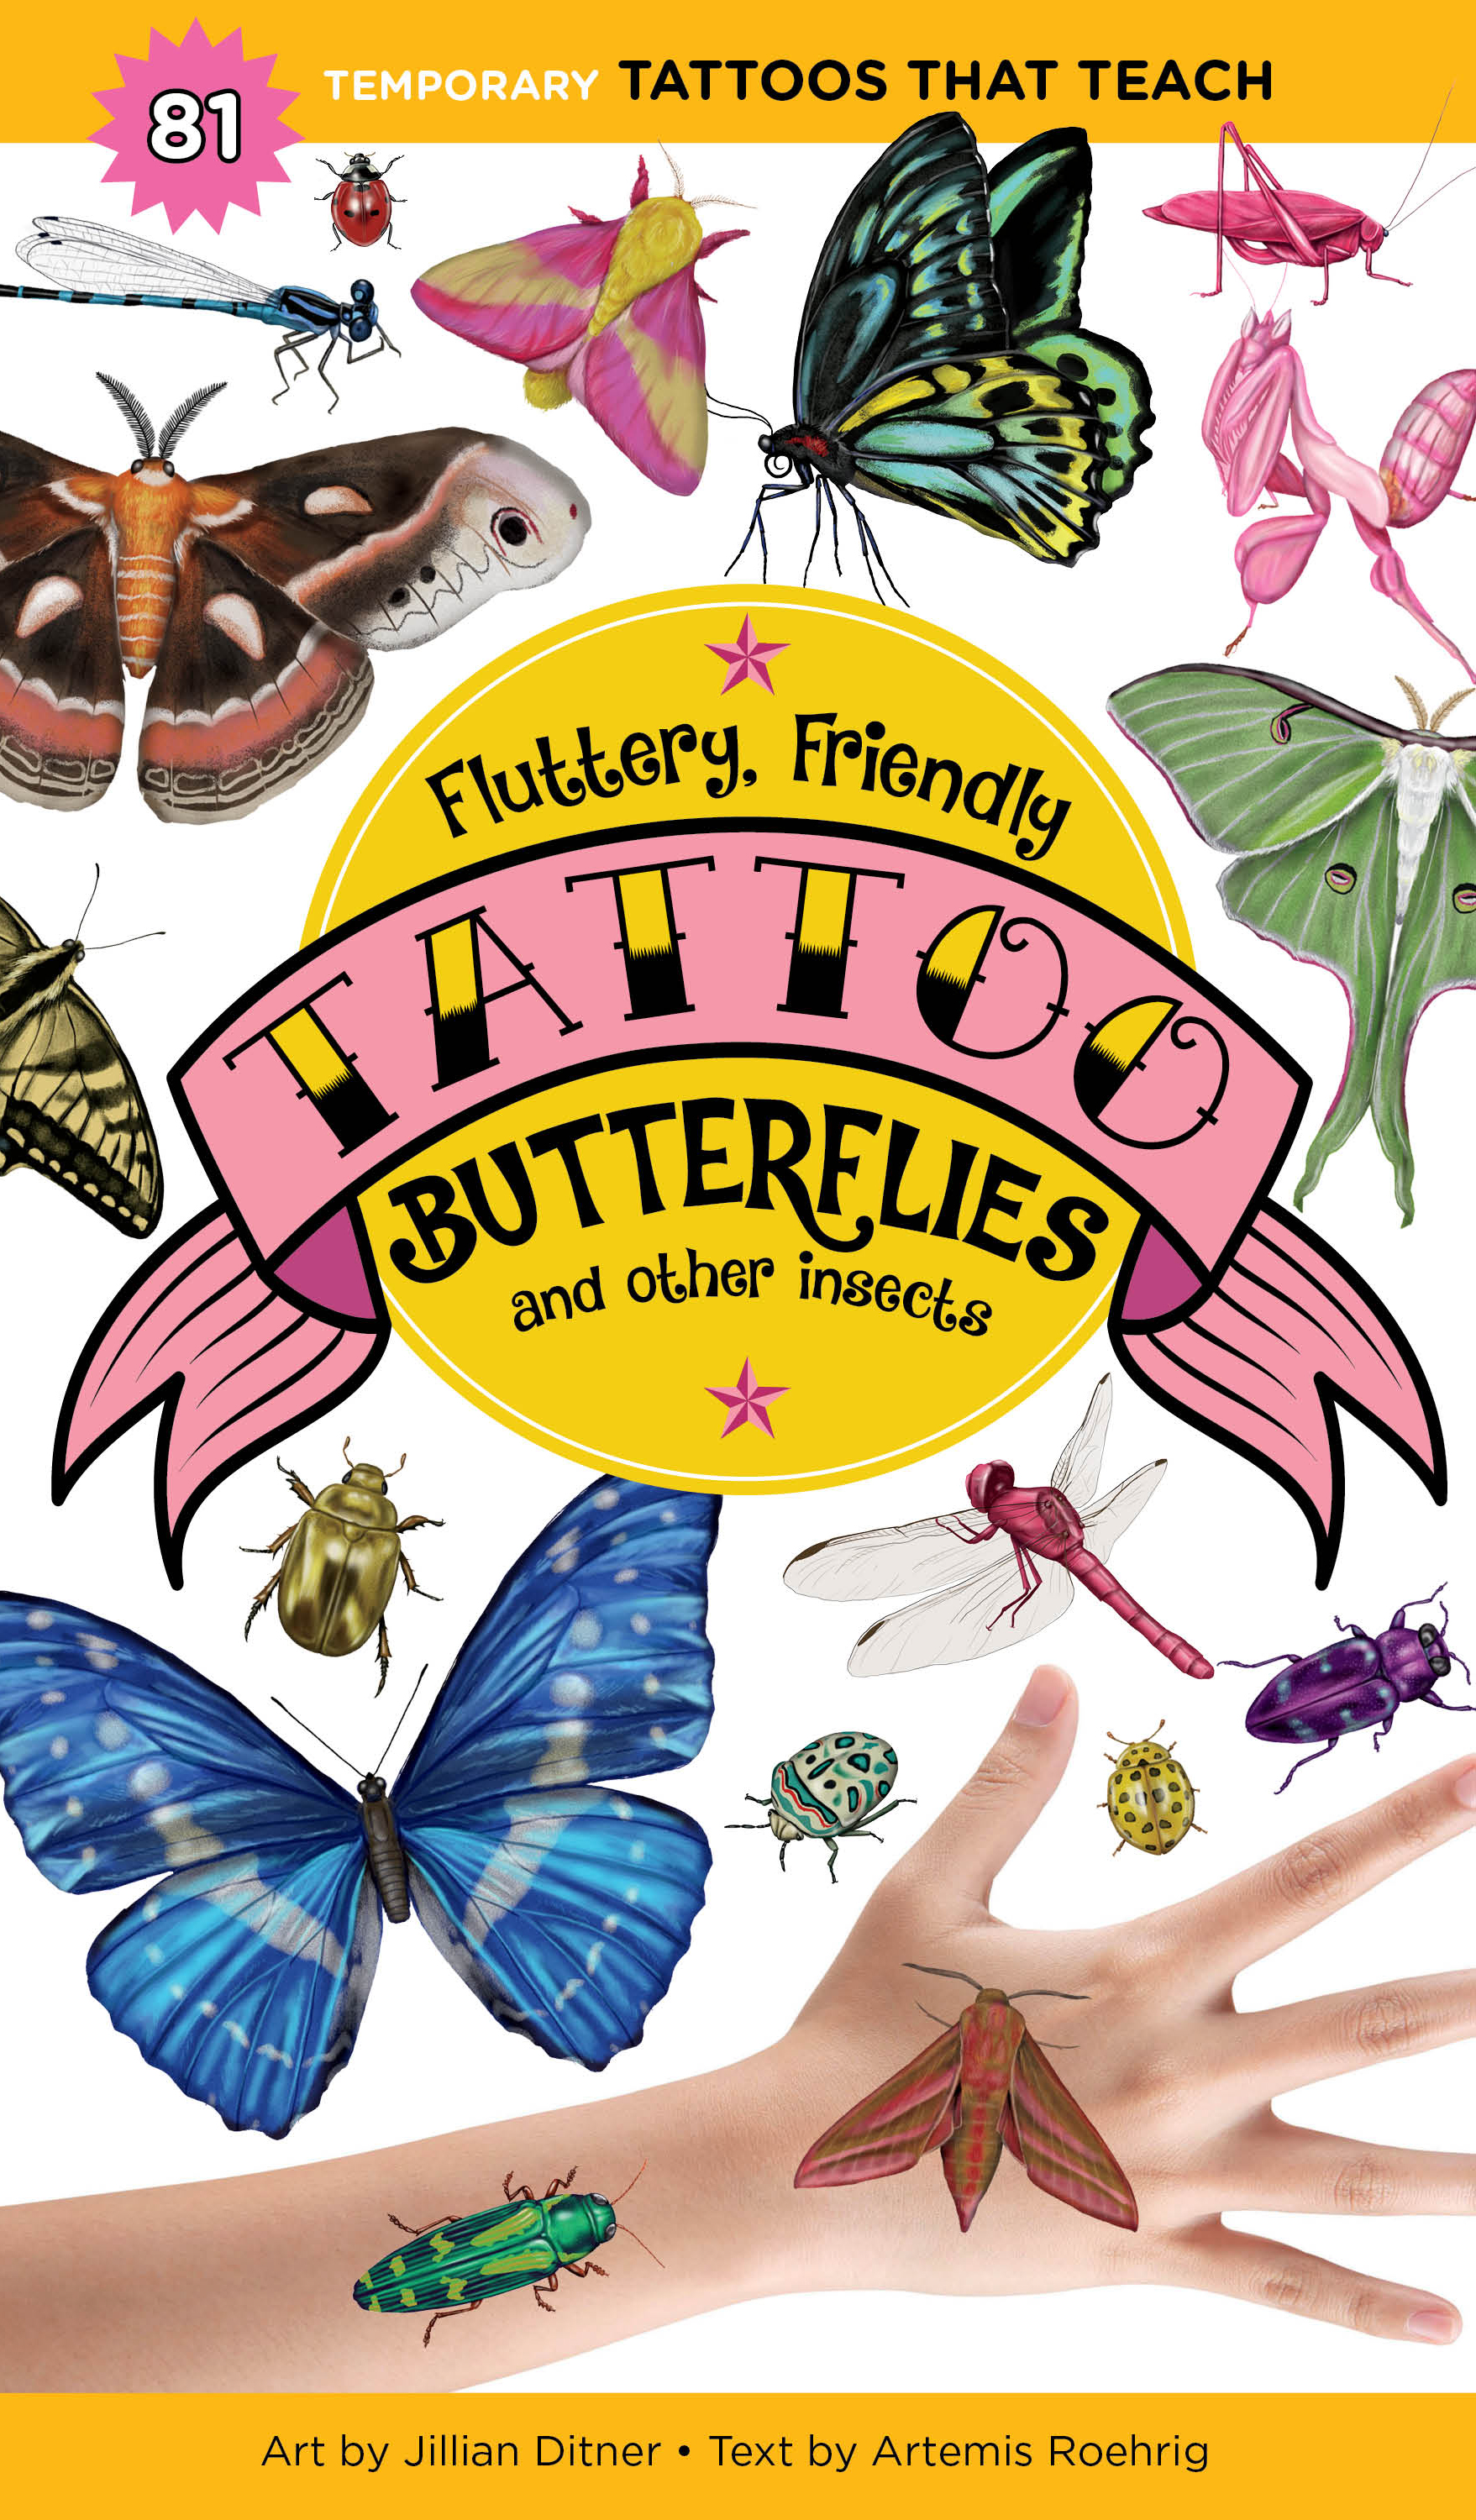 @Jillian Ditner Illustration Fluttery, Friendly Tattoo  Butterflies and other Insects